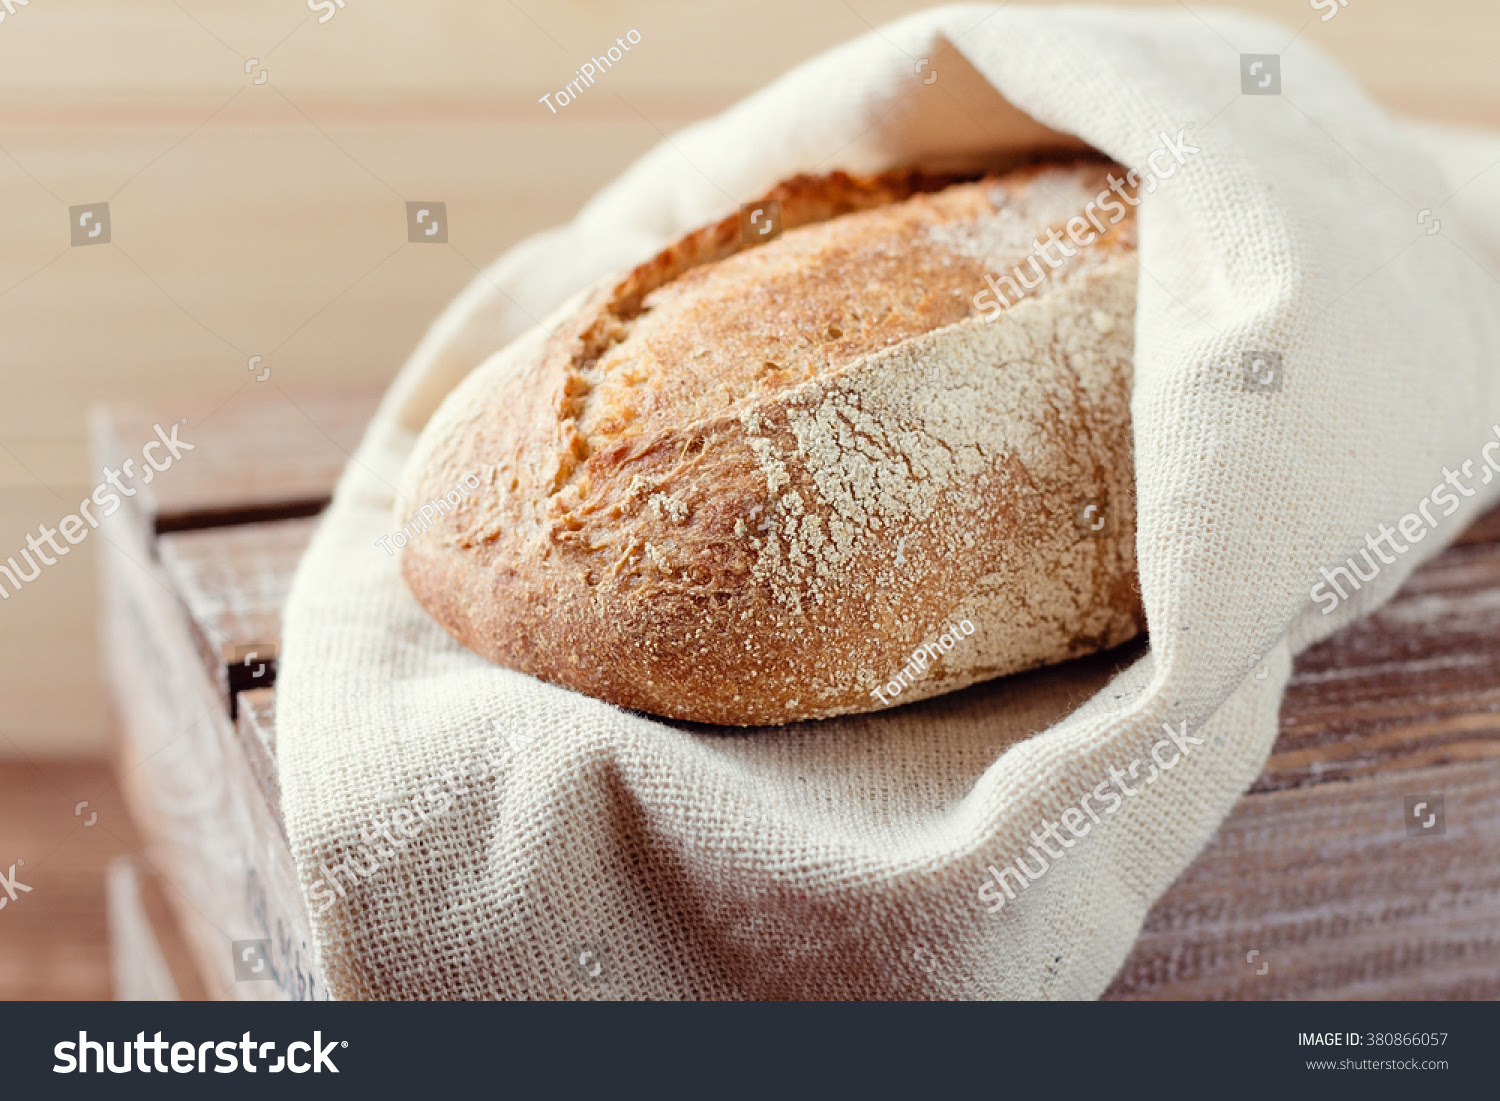 http://www.shutterstock.com/pic-380866057/stock-photo-fresh-bread-wrapped-in-a-linen-cloth-on-a-wooden-background-shallow-focus.html